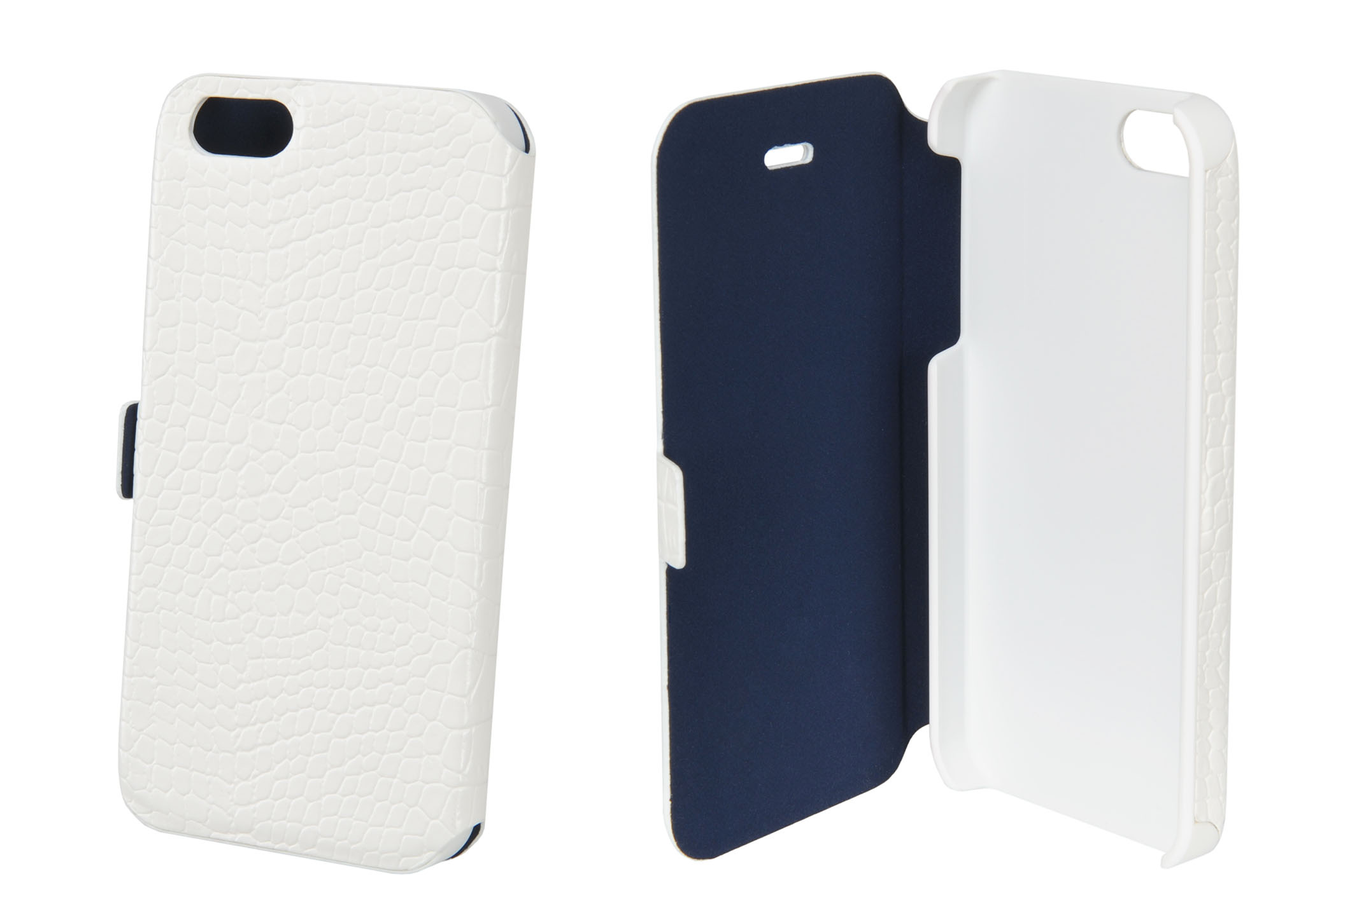 Housse pour iphone kenzo etui iphone 5s blanc 1393782 for Housse iphone 5s